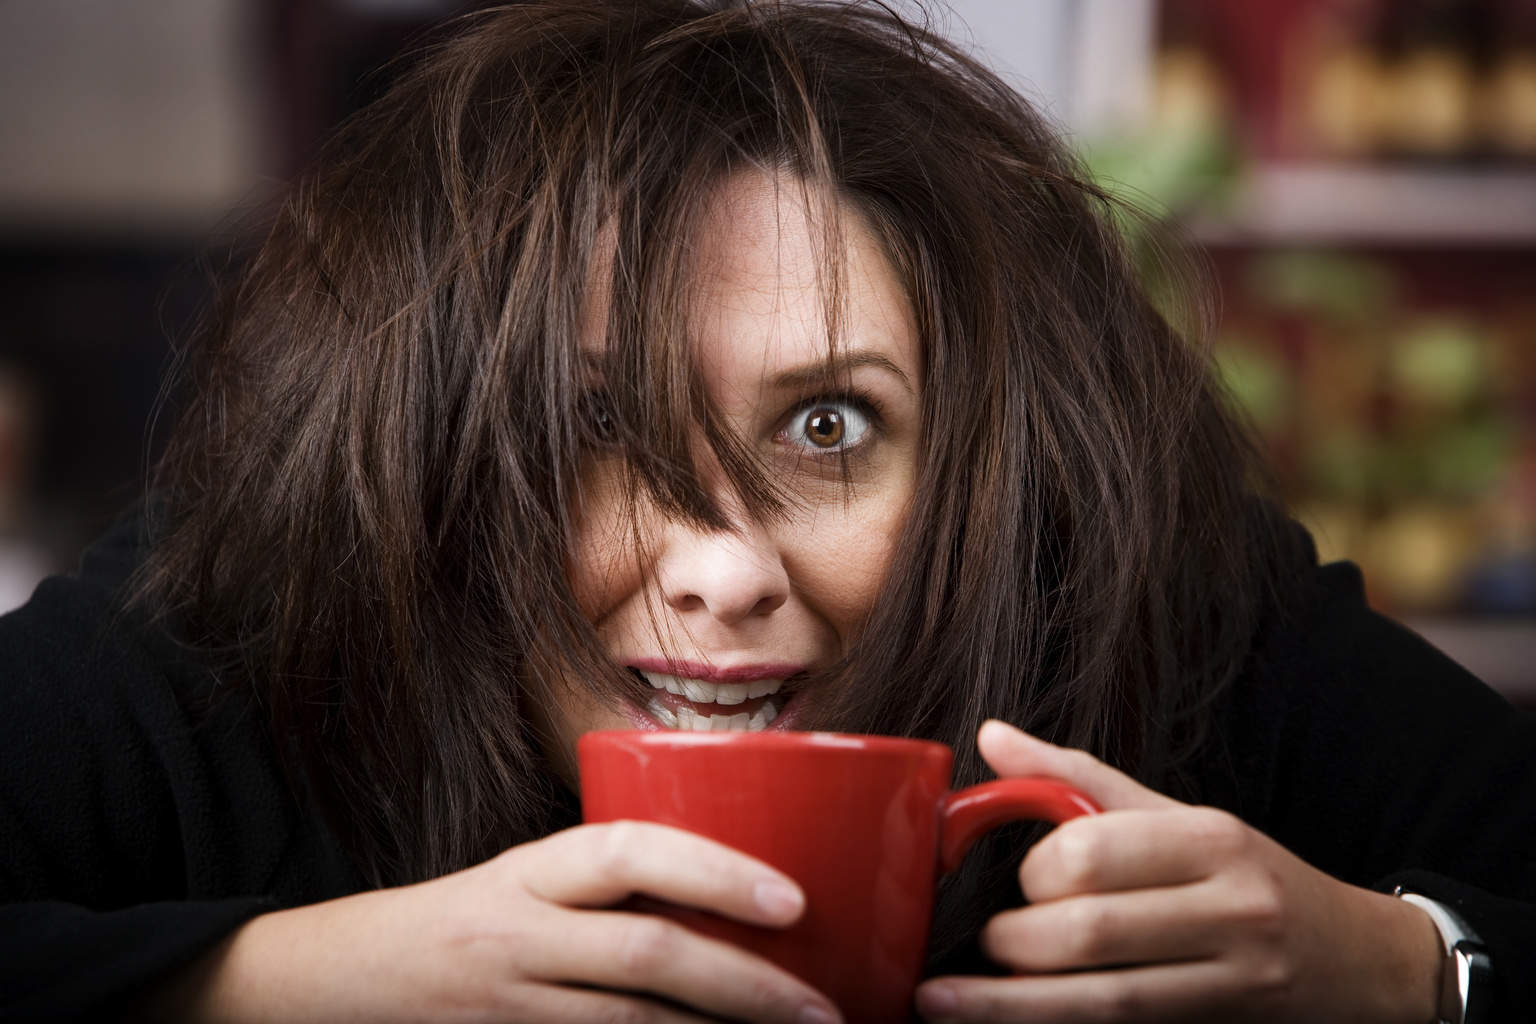 Half awake woman cradling a mug of coffee